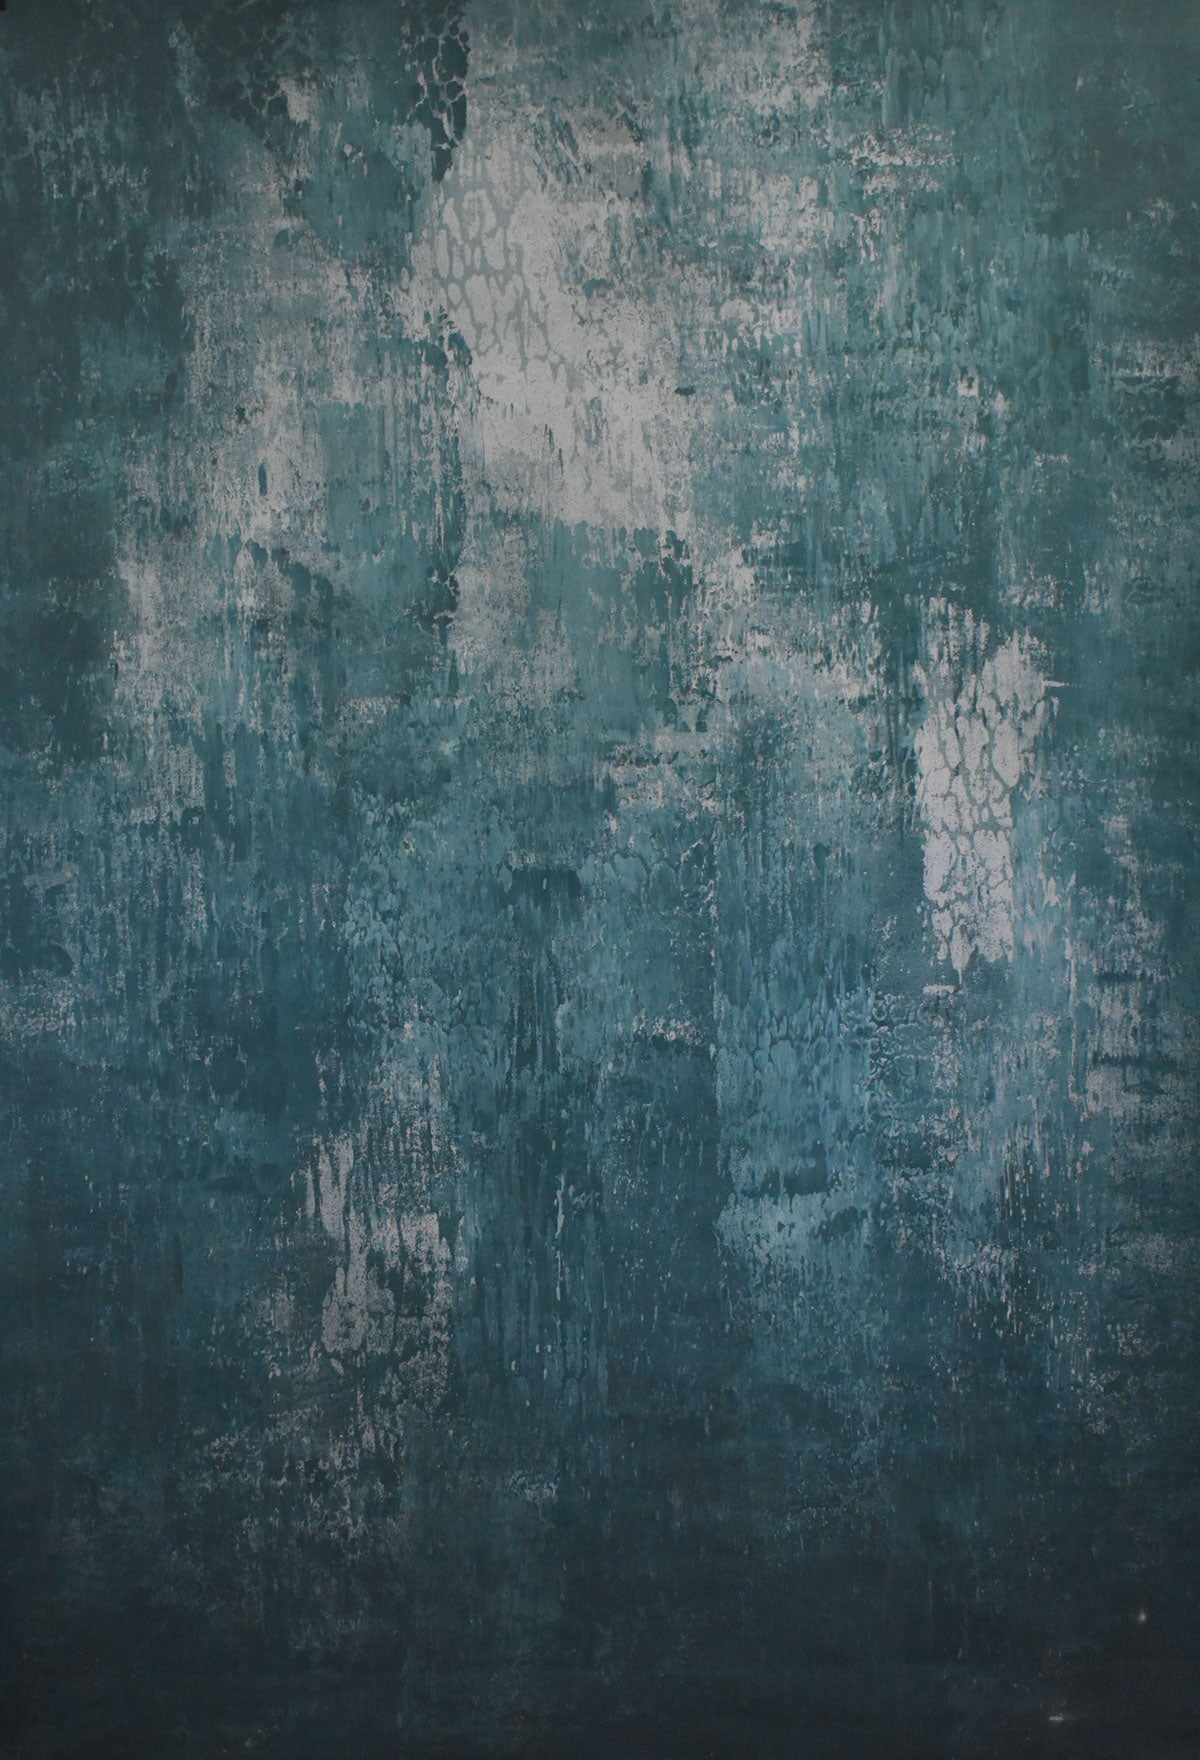 RTS-Clotstudio Abstract Teal Grey Spray Textured Hand Painted Canvas Backdrop #clot 2